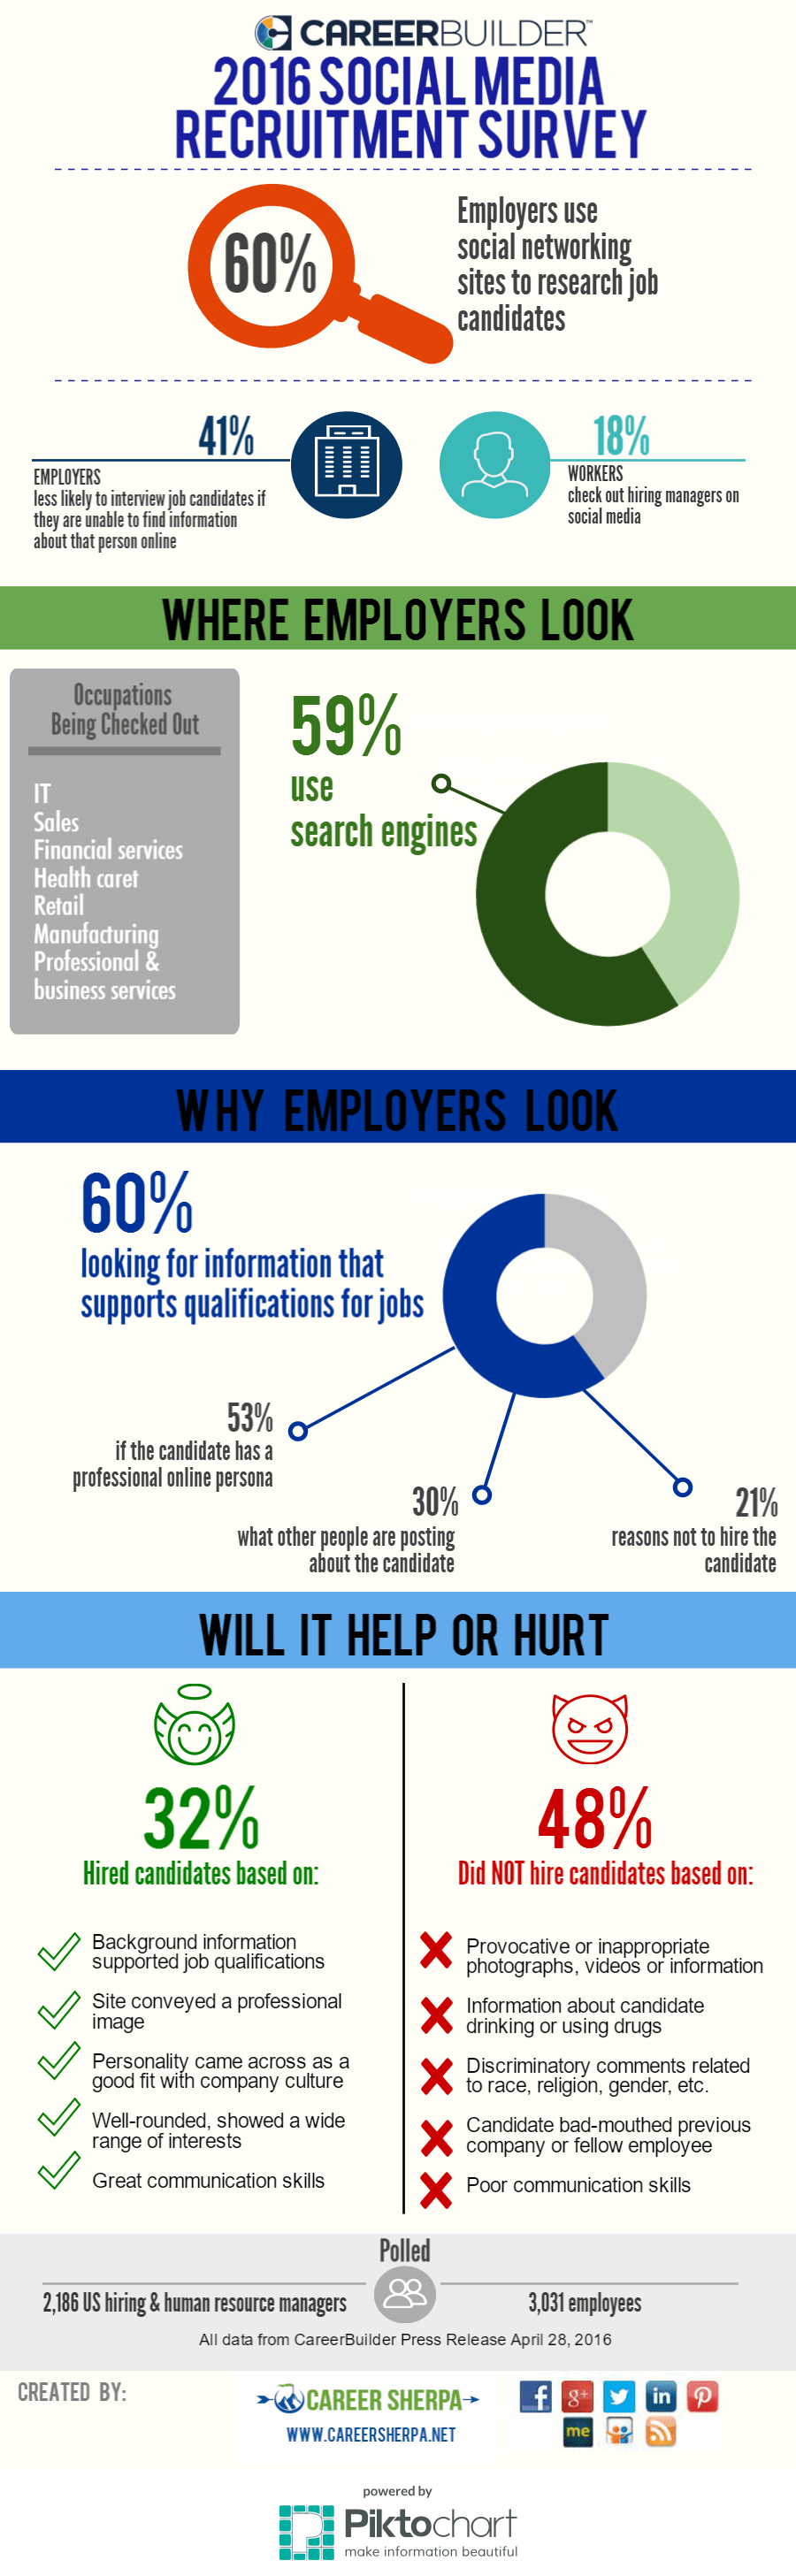 employers are checking you out online career sherpa infographic